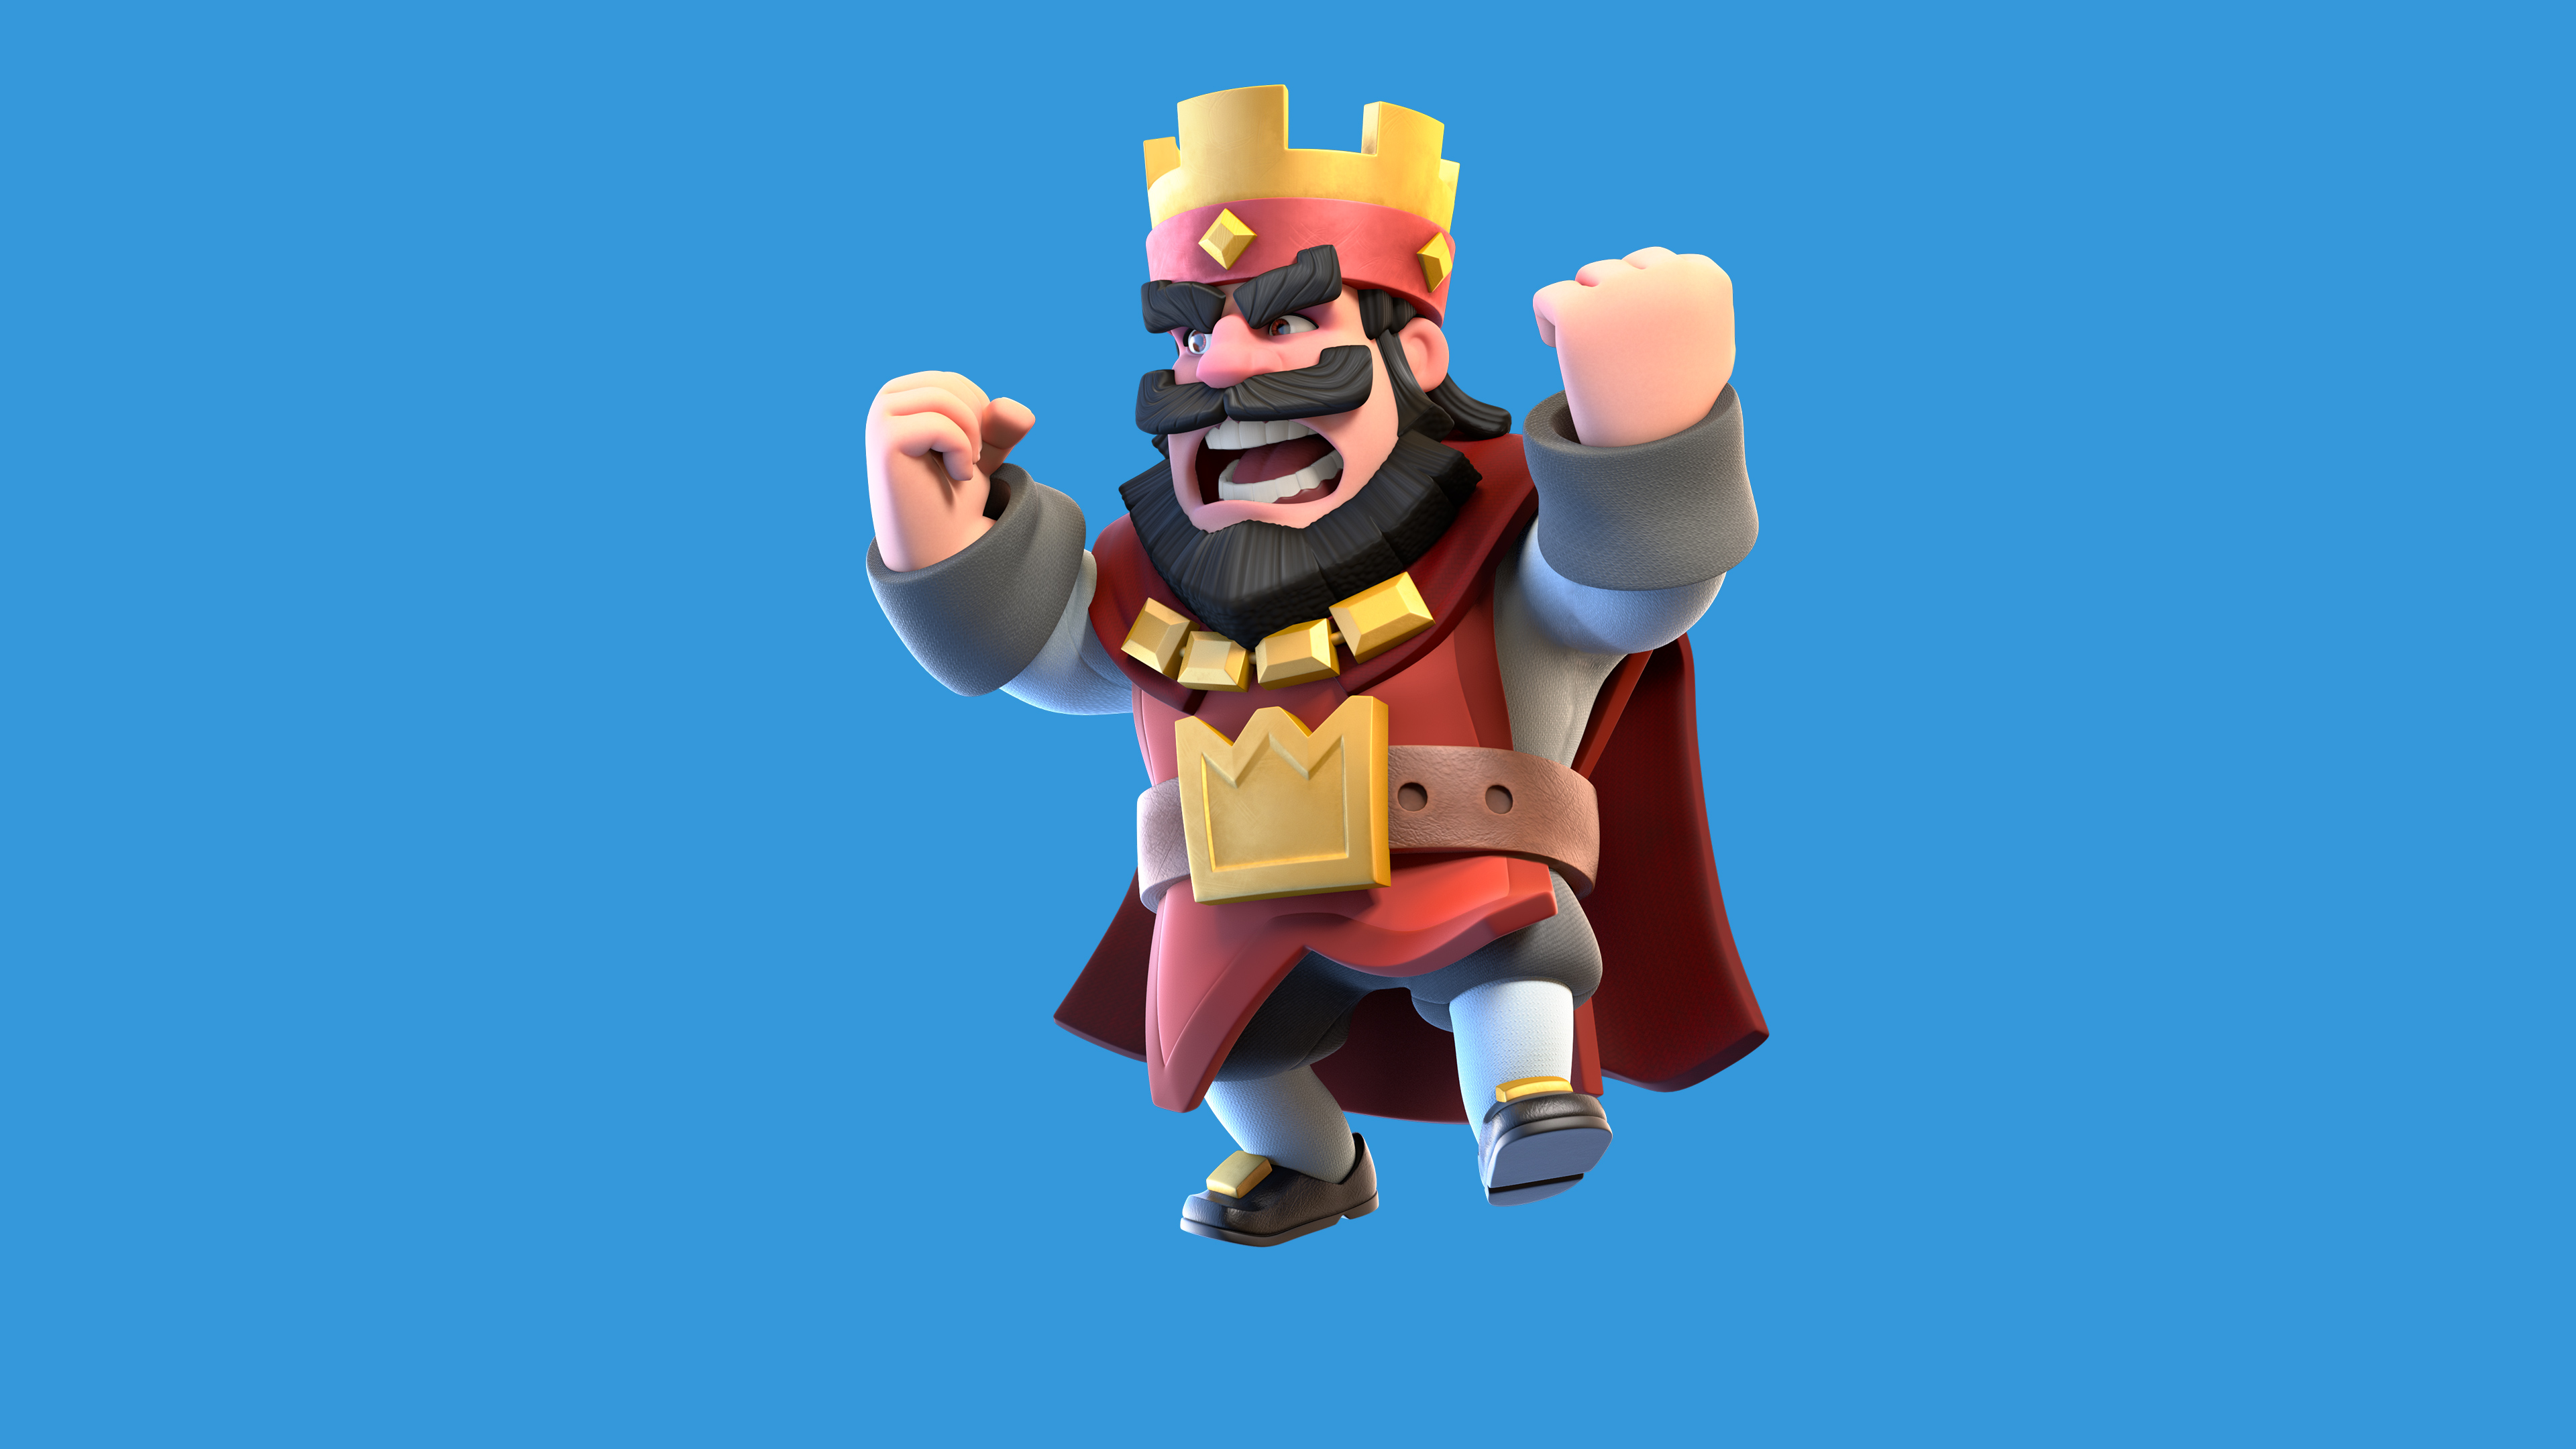 Download Clash Royale Red King.